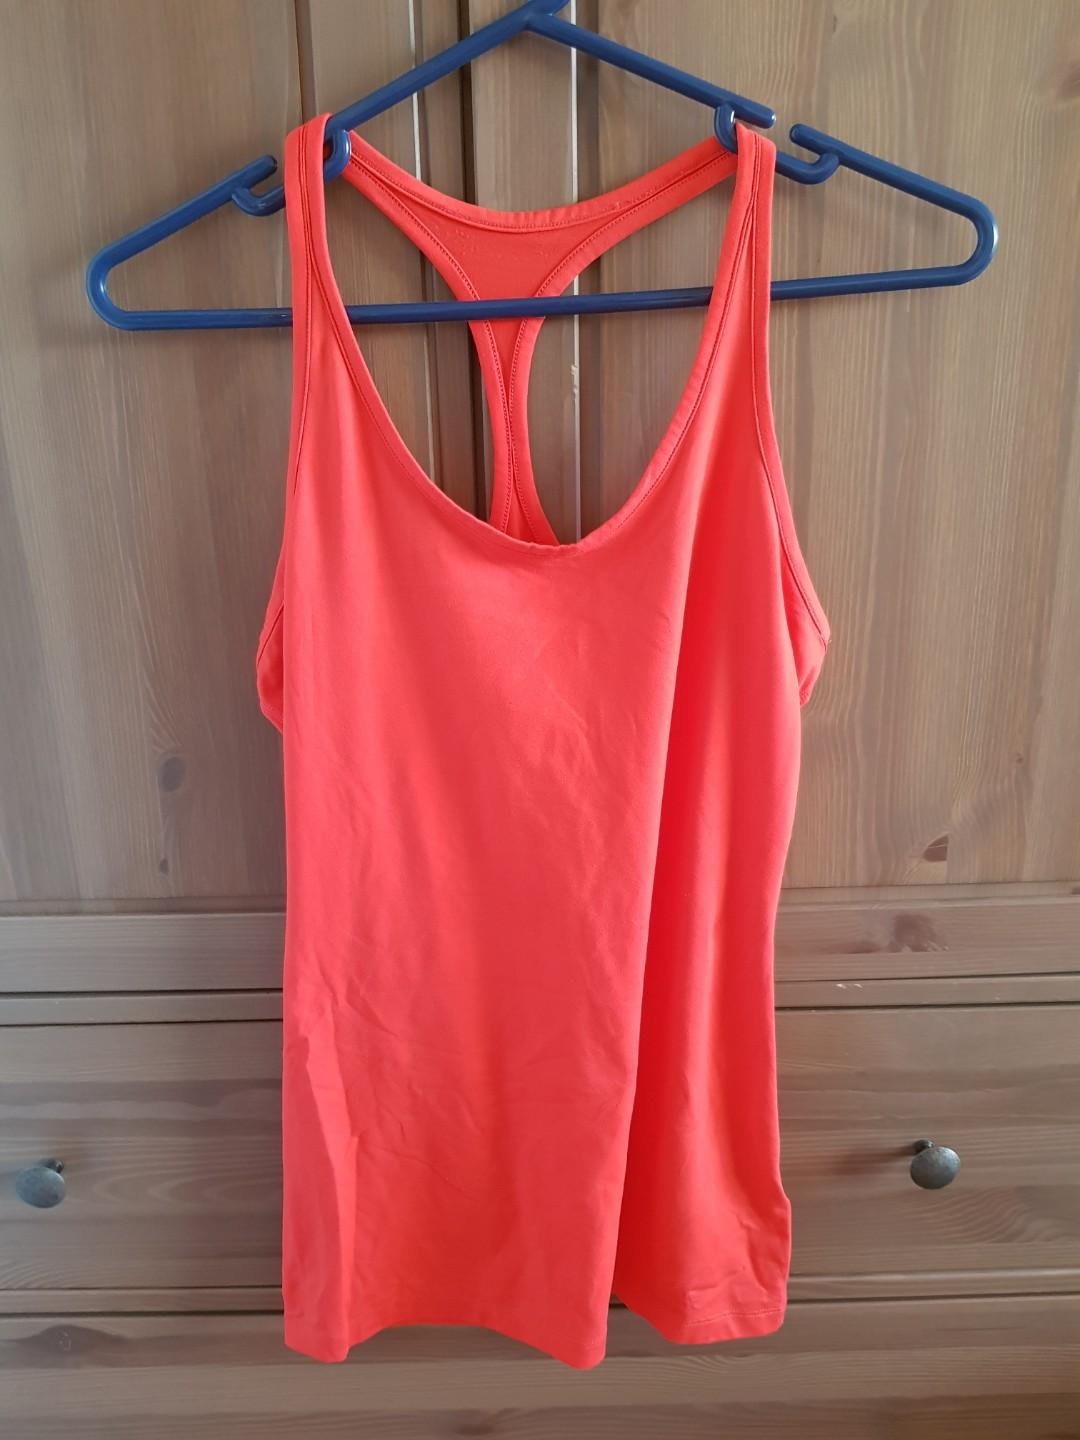 Dark Orange Red NIKE DRI-FIT Singlet Sports Top Size 10 S